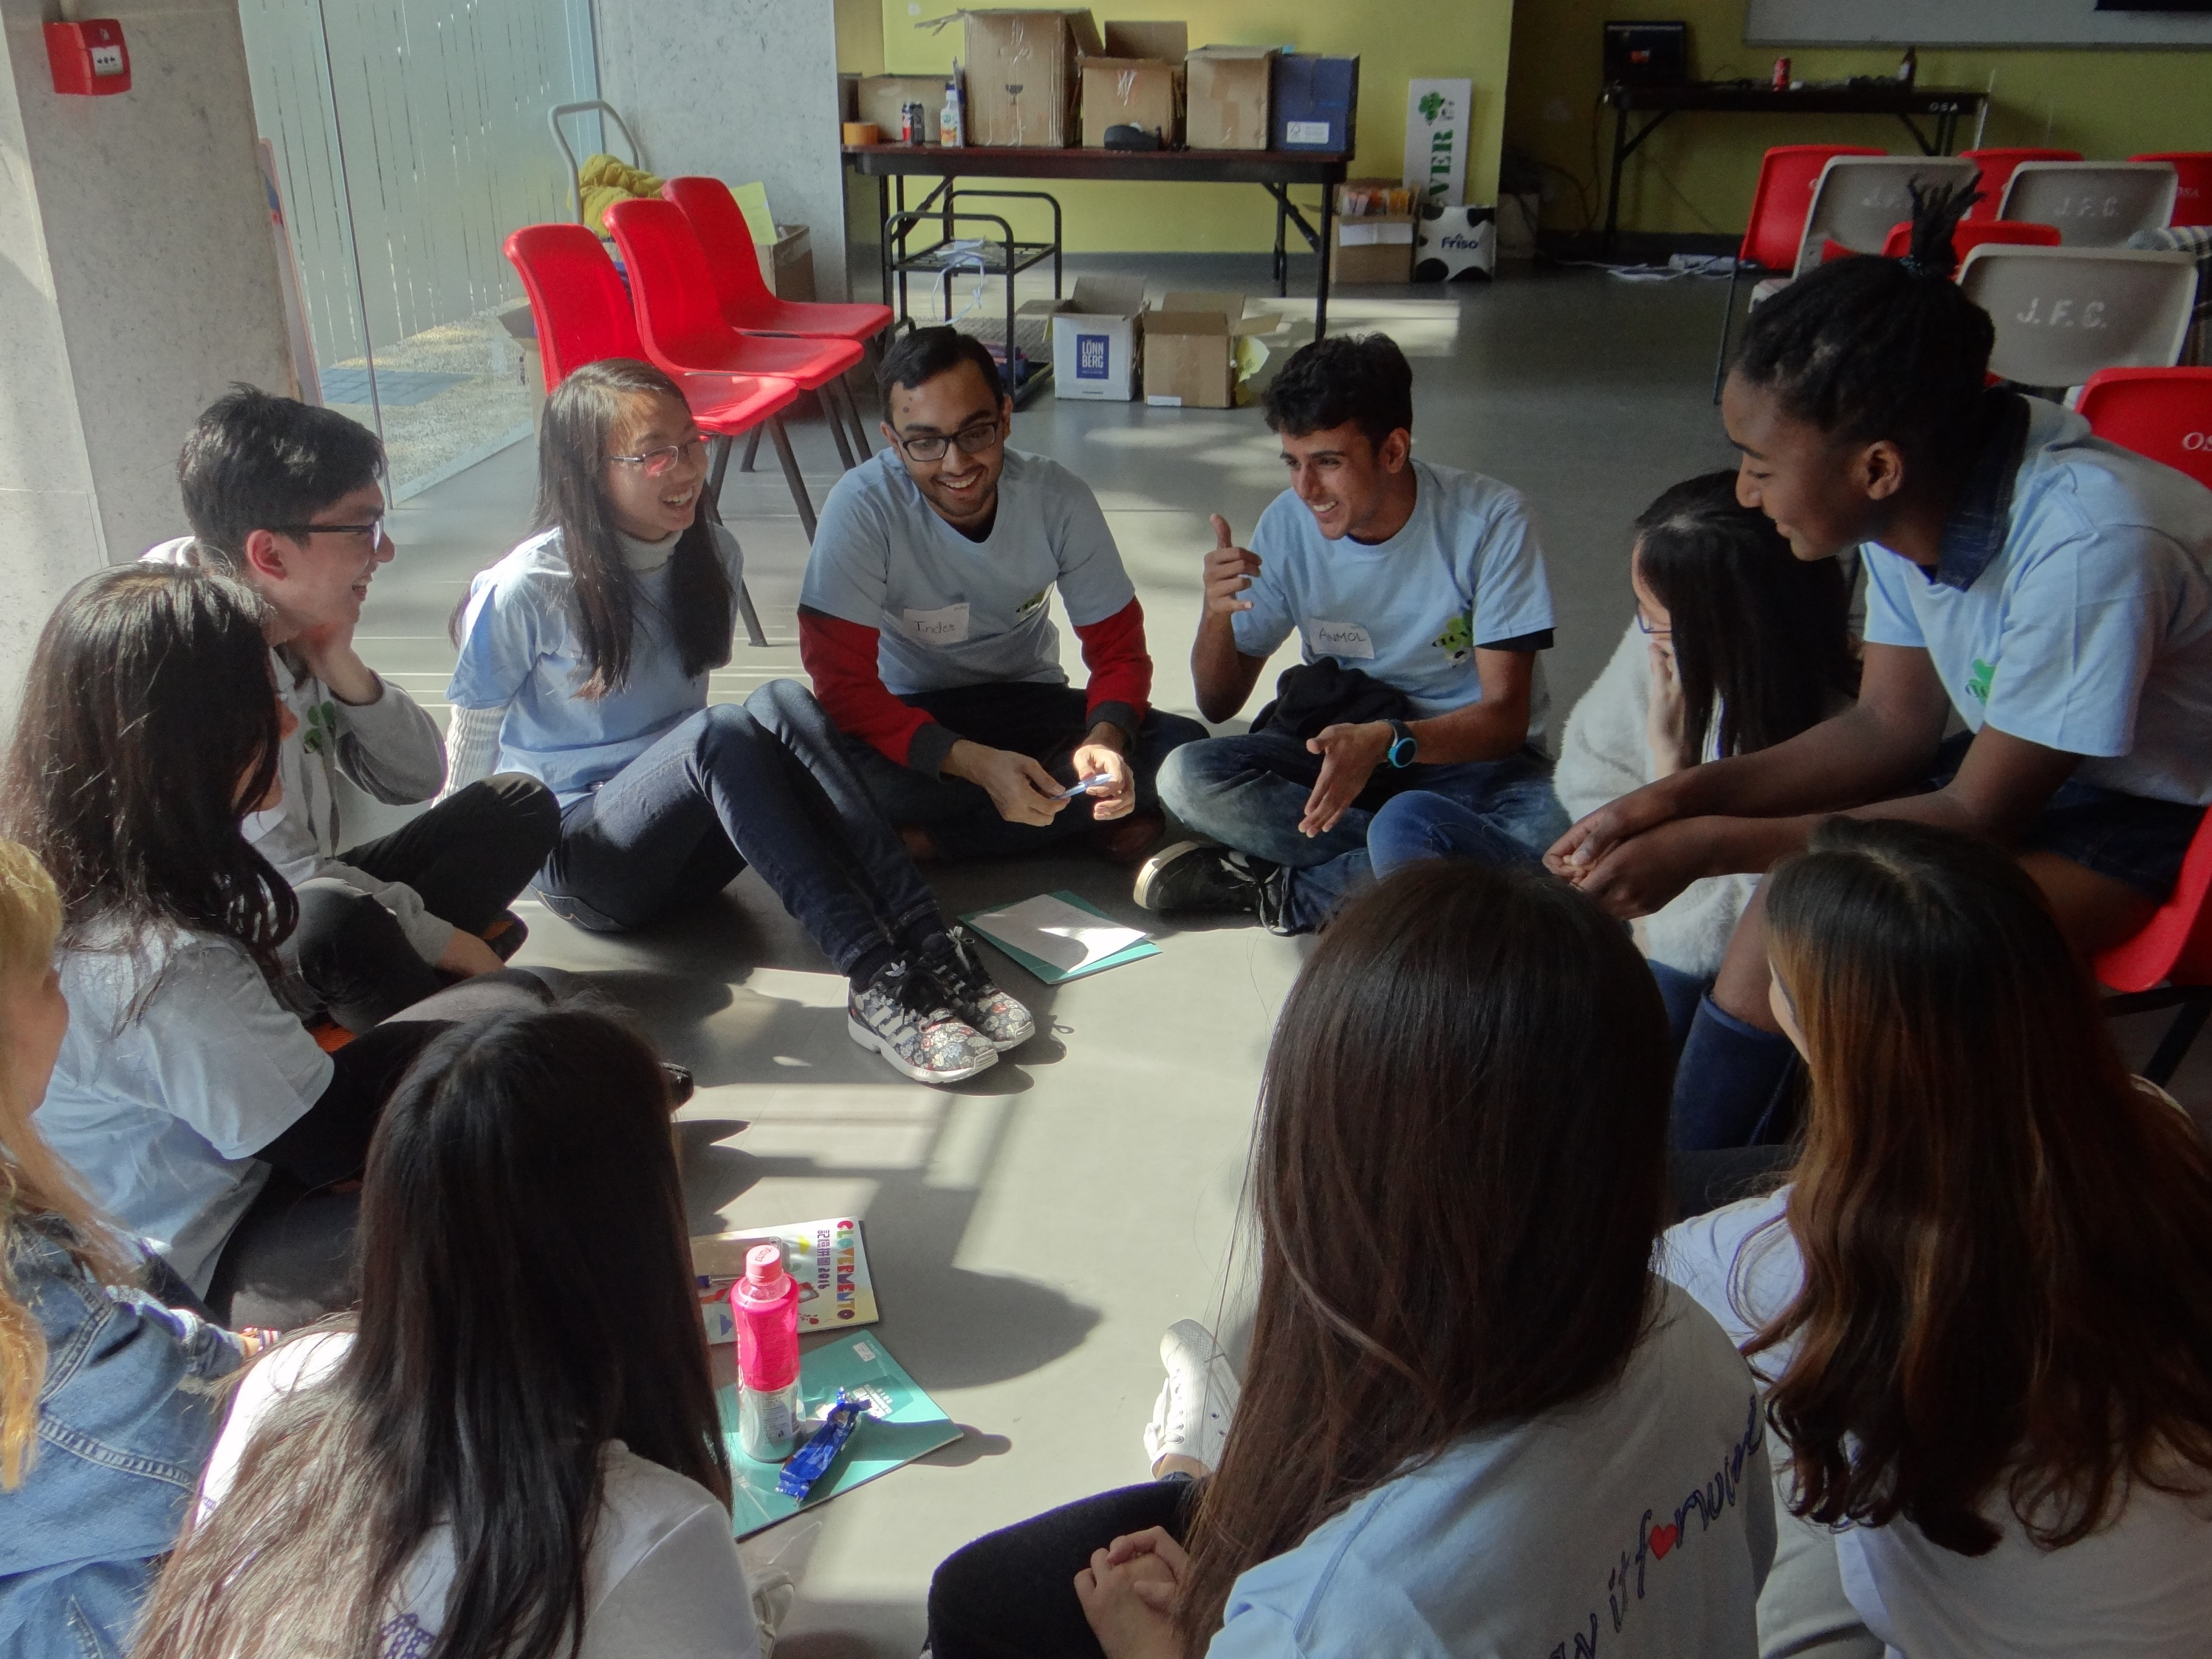 Local and non-local students participating in the CLOVER Programme have a group discussion